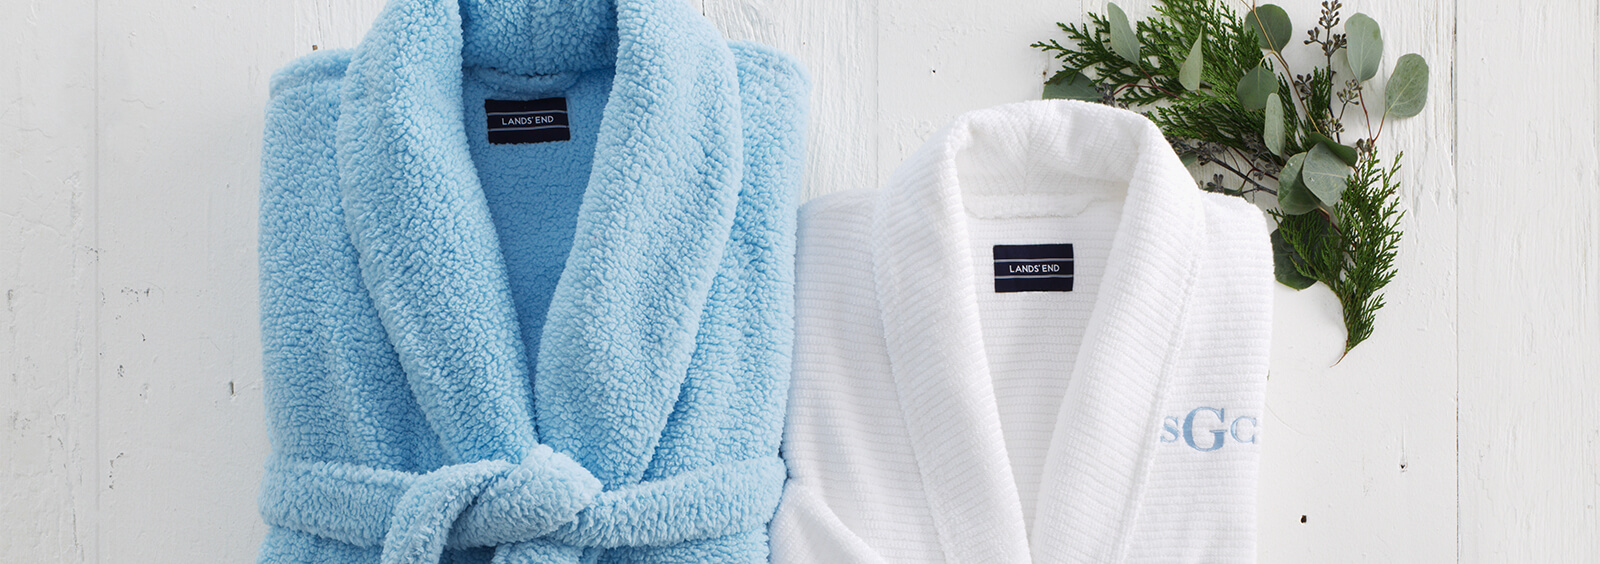 This Christmas, Make Things Personal with Monogrammed Gifts